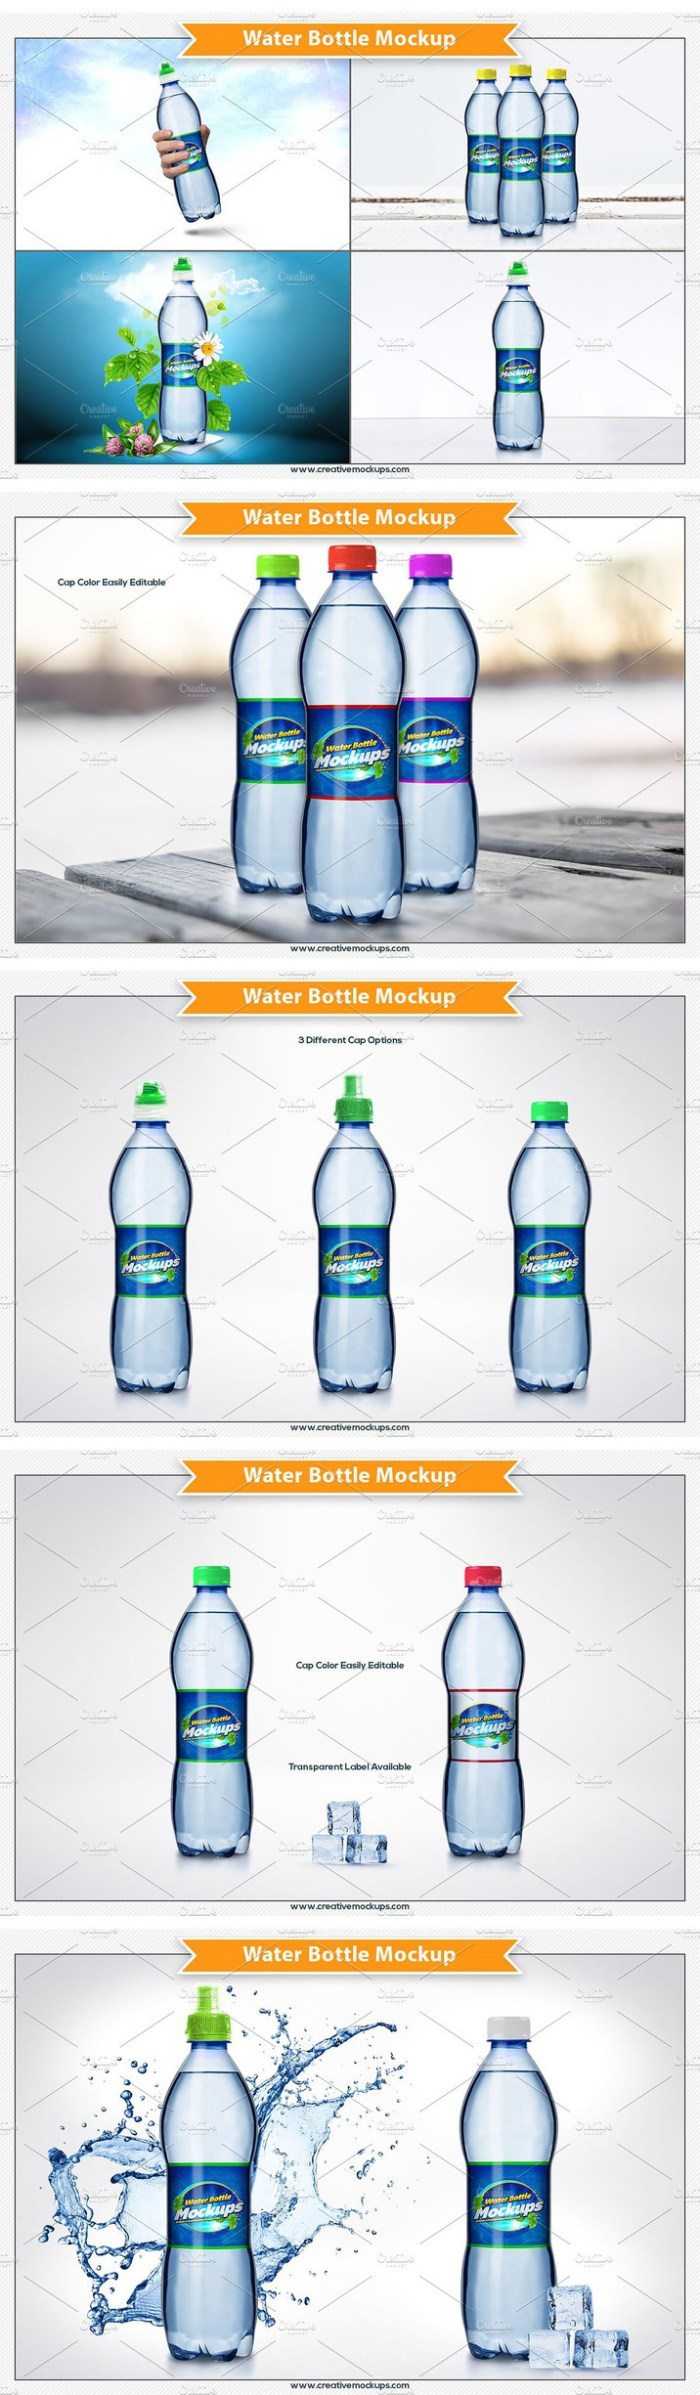 creative_market_water_bottle_mockup_1279703